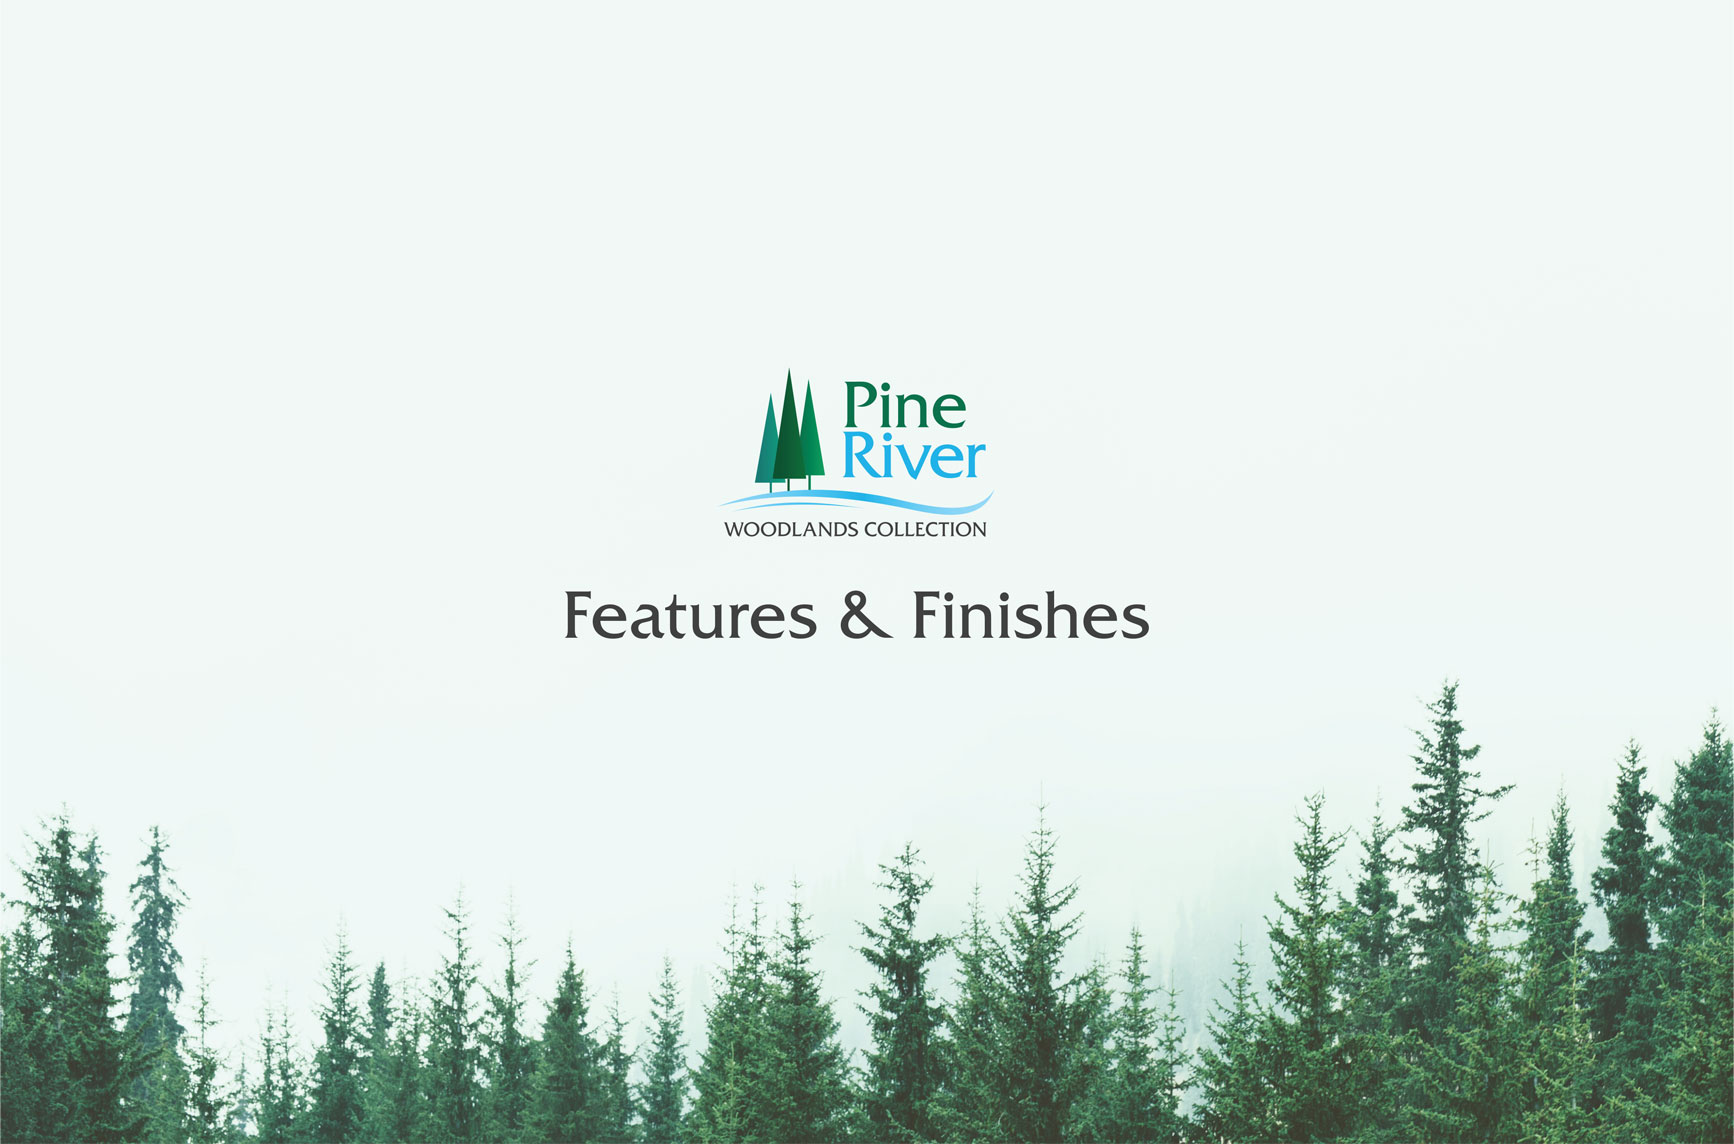 Pine River New Home Features Brochure